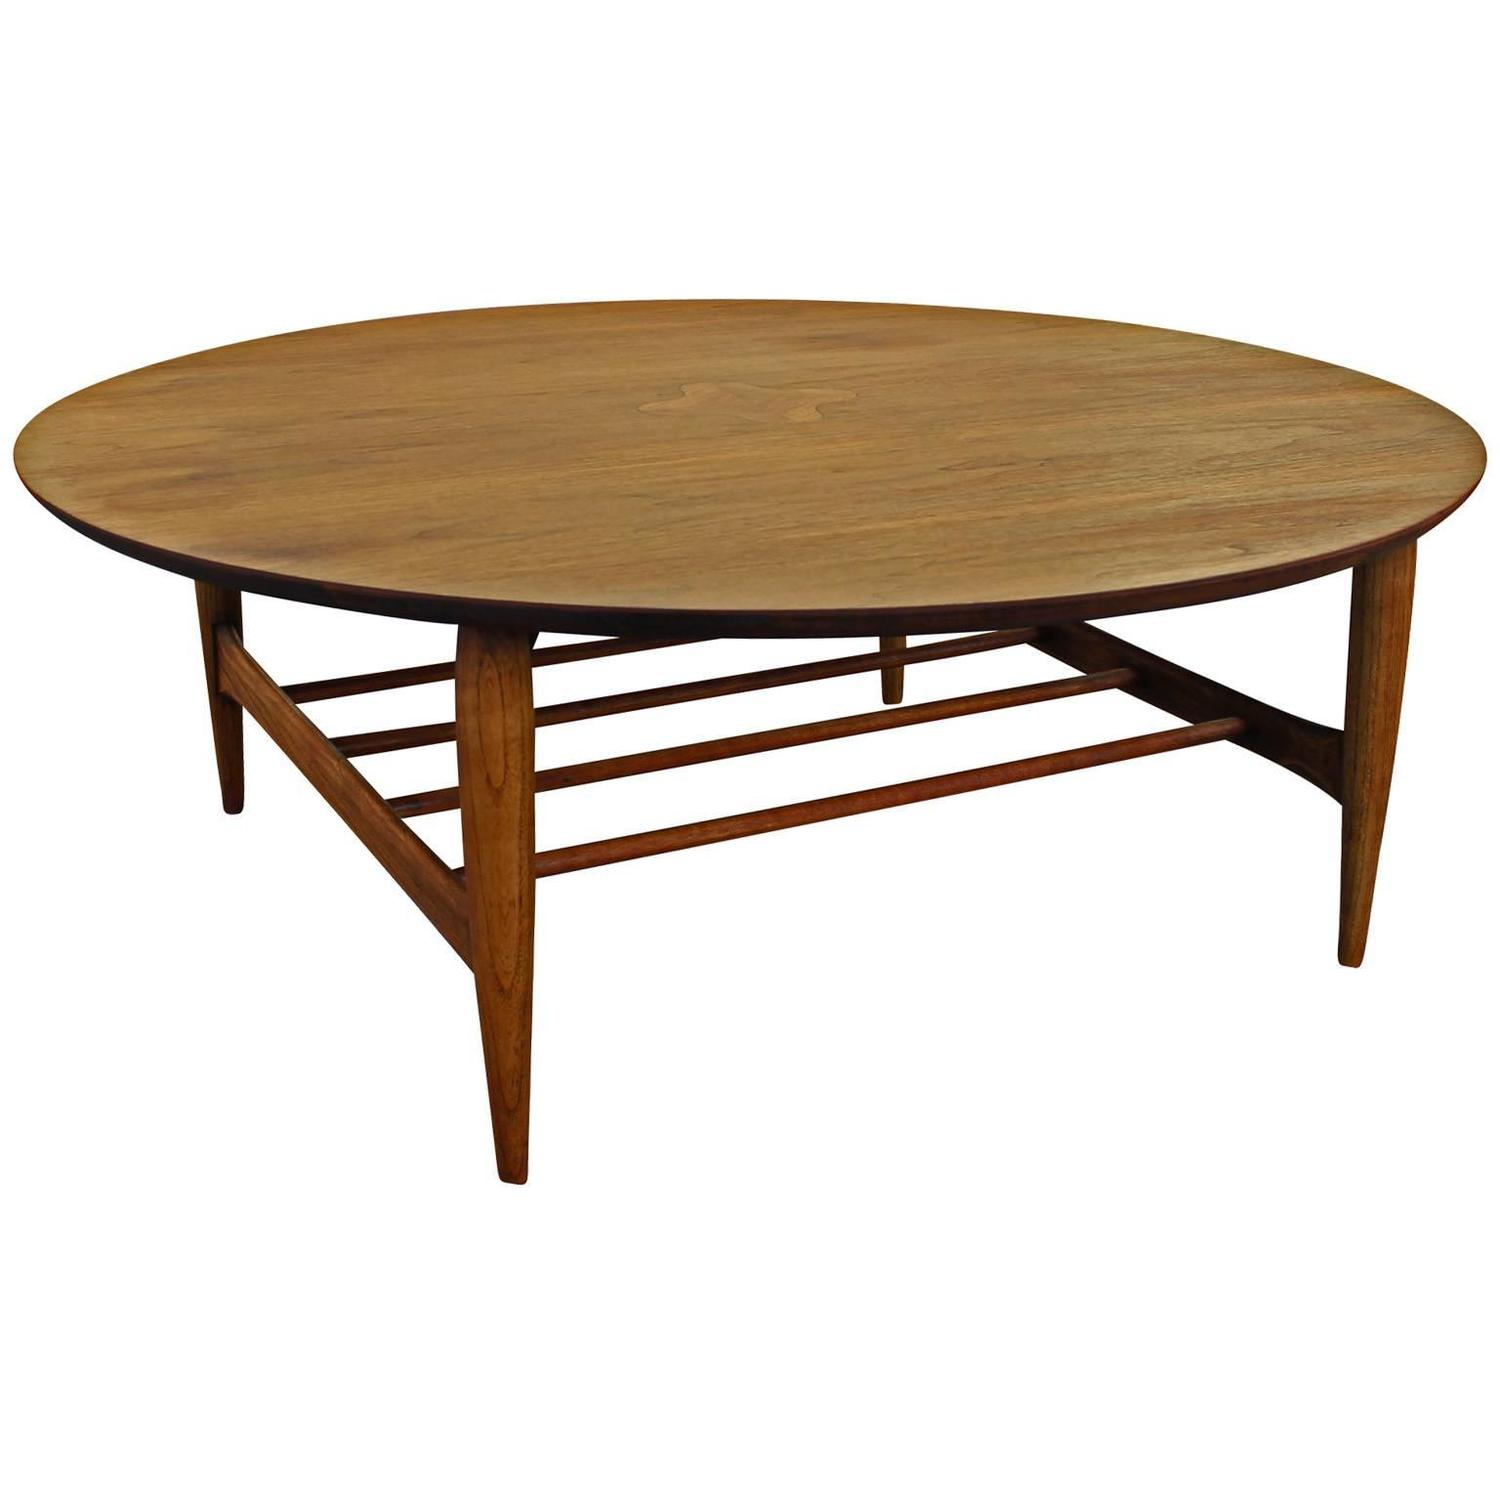 Round Lane Walnut Inlaid Coffee Table At 1stdibs